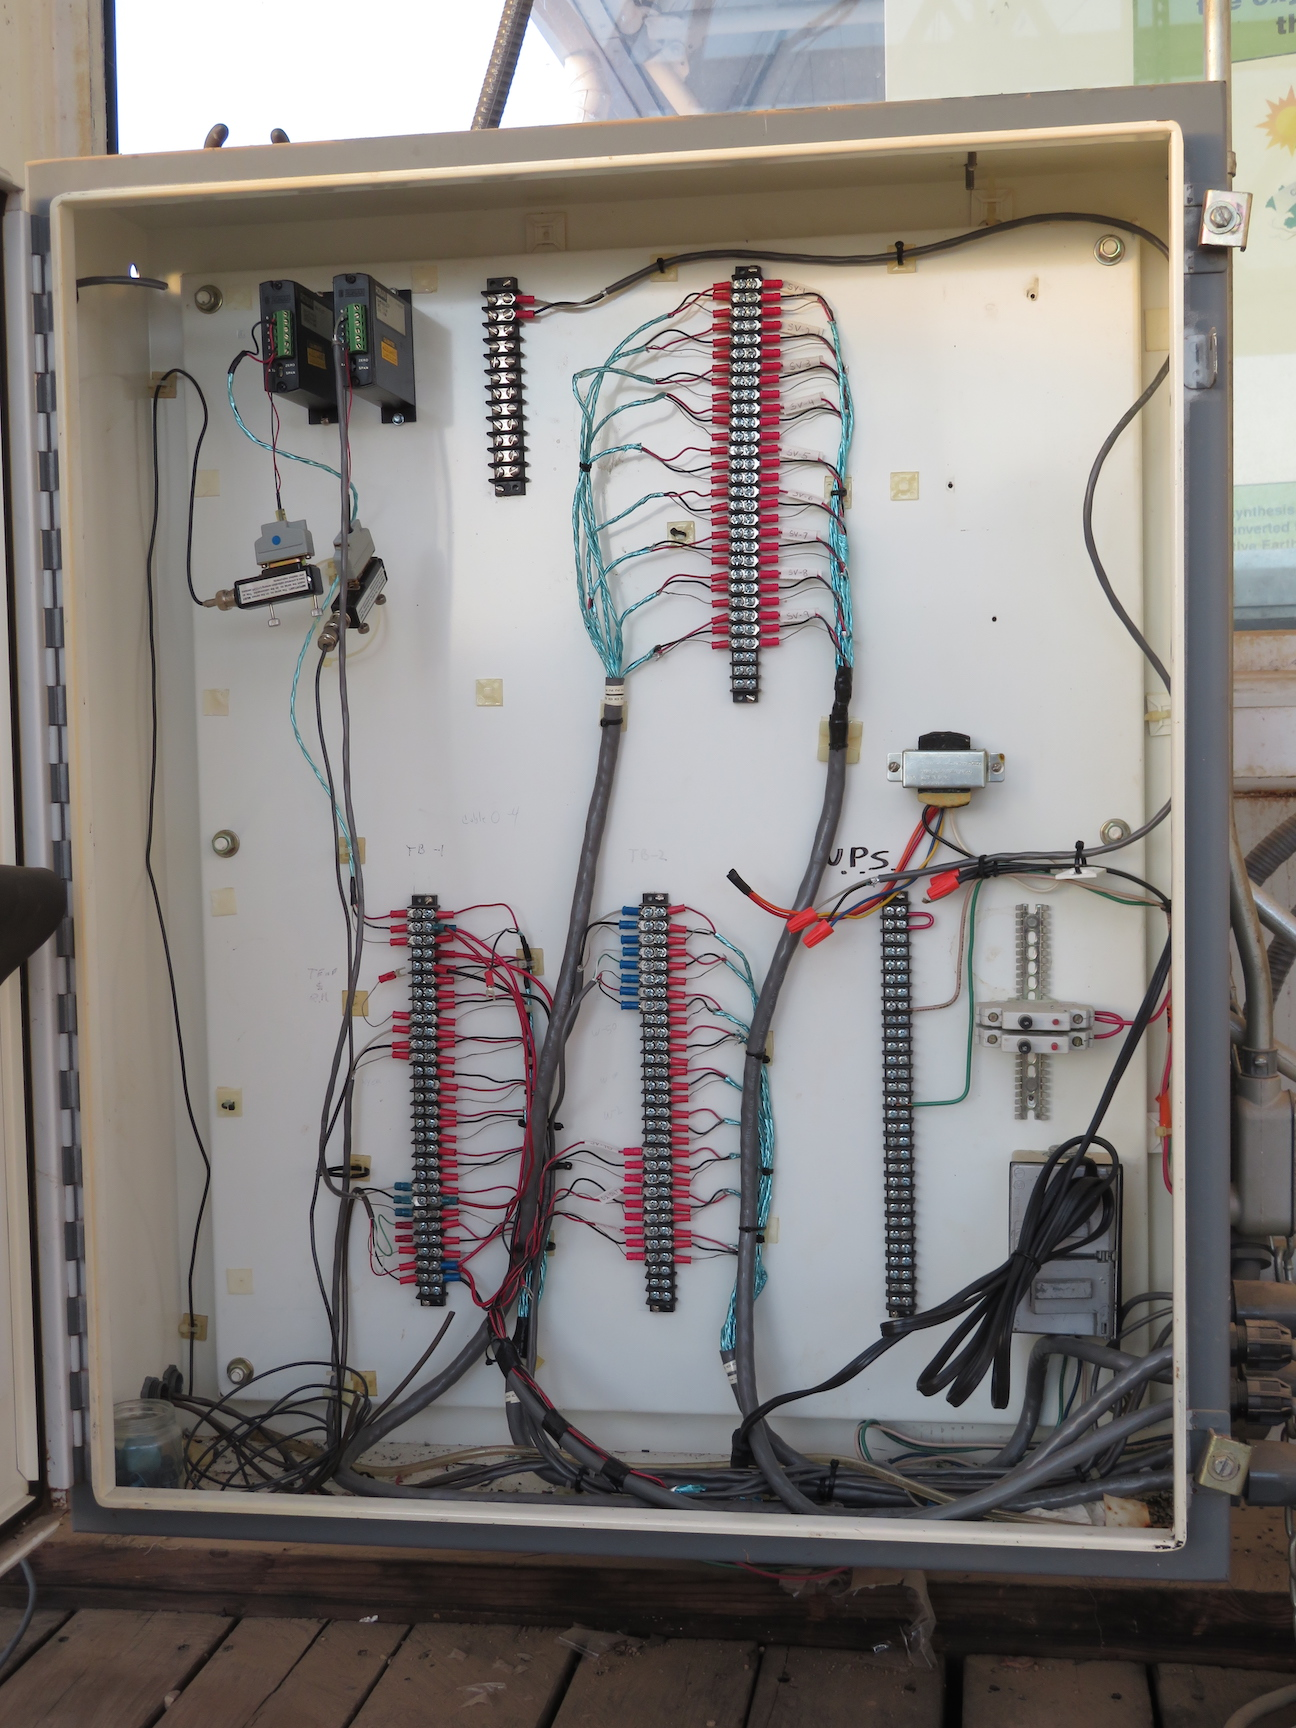 Sensor wiring in the Test Module, photo by Kai Staats